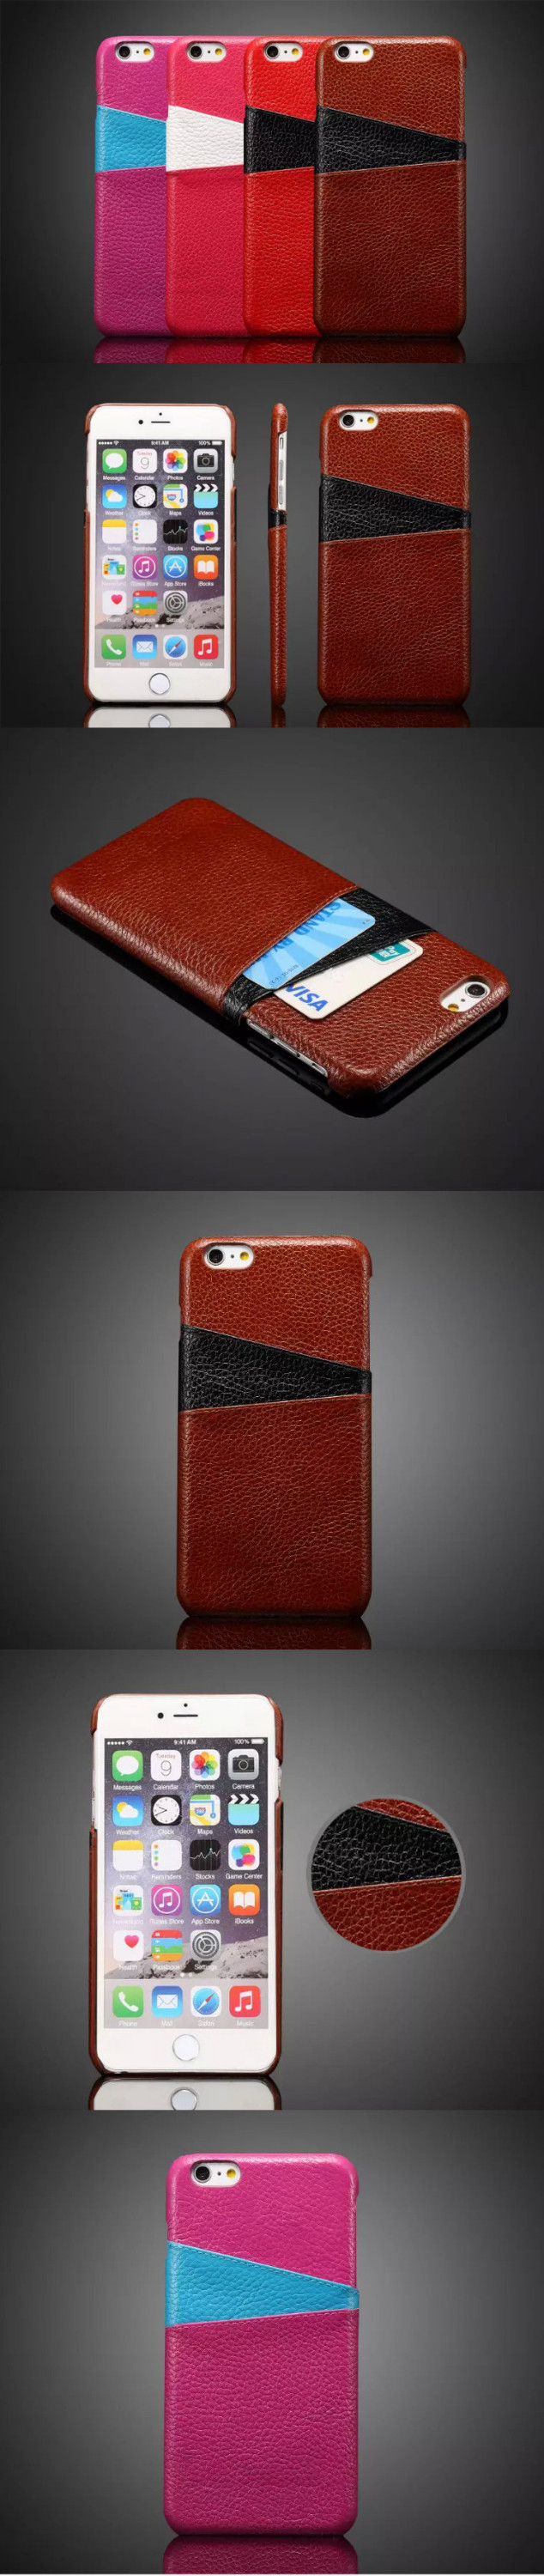 wp1031 Mobile Phone Leather Case for Iphone 6 plus with Card Holder